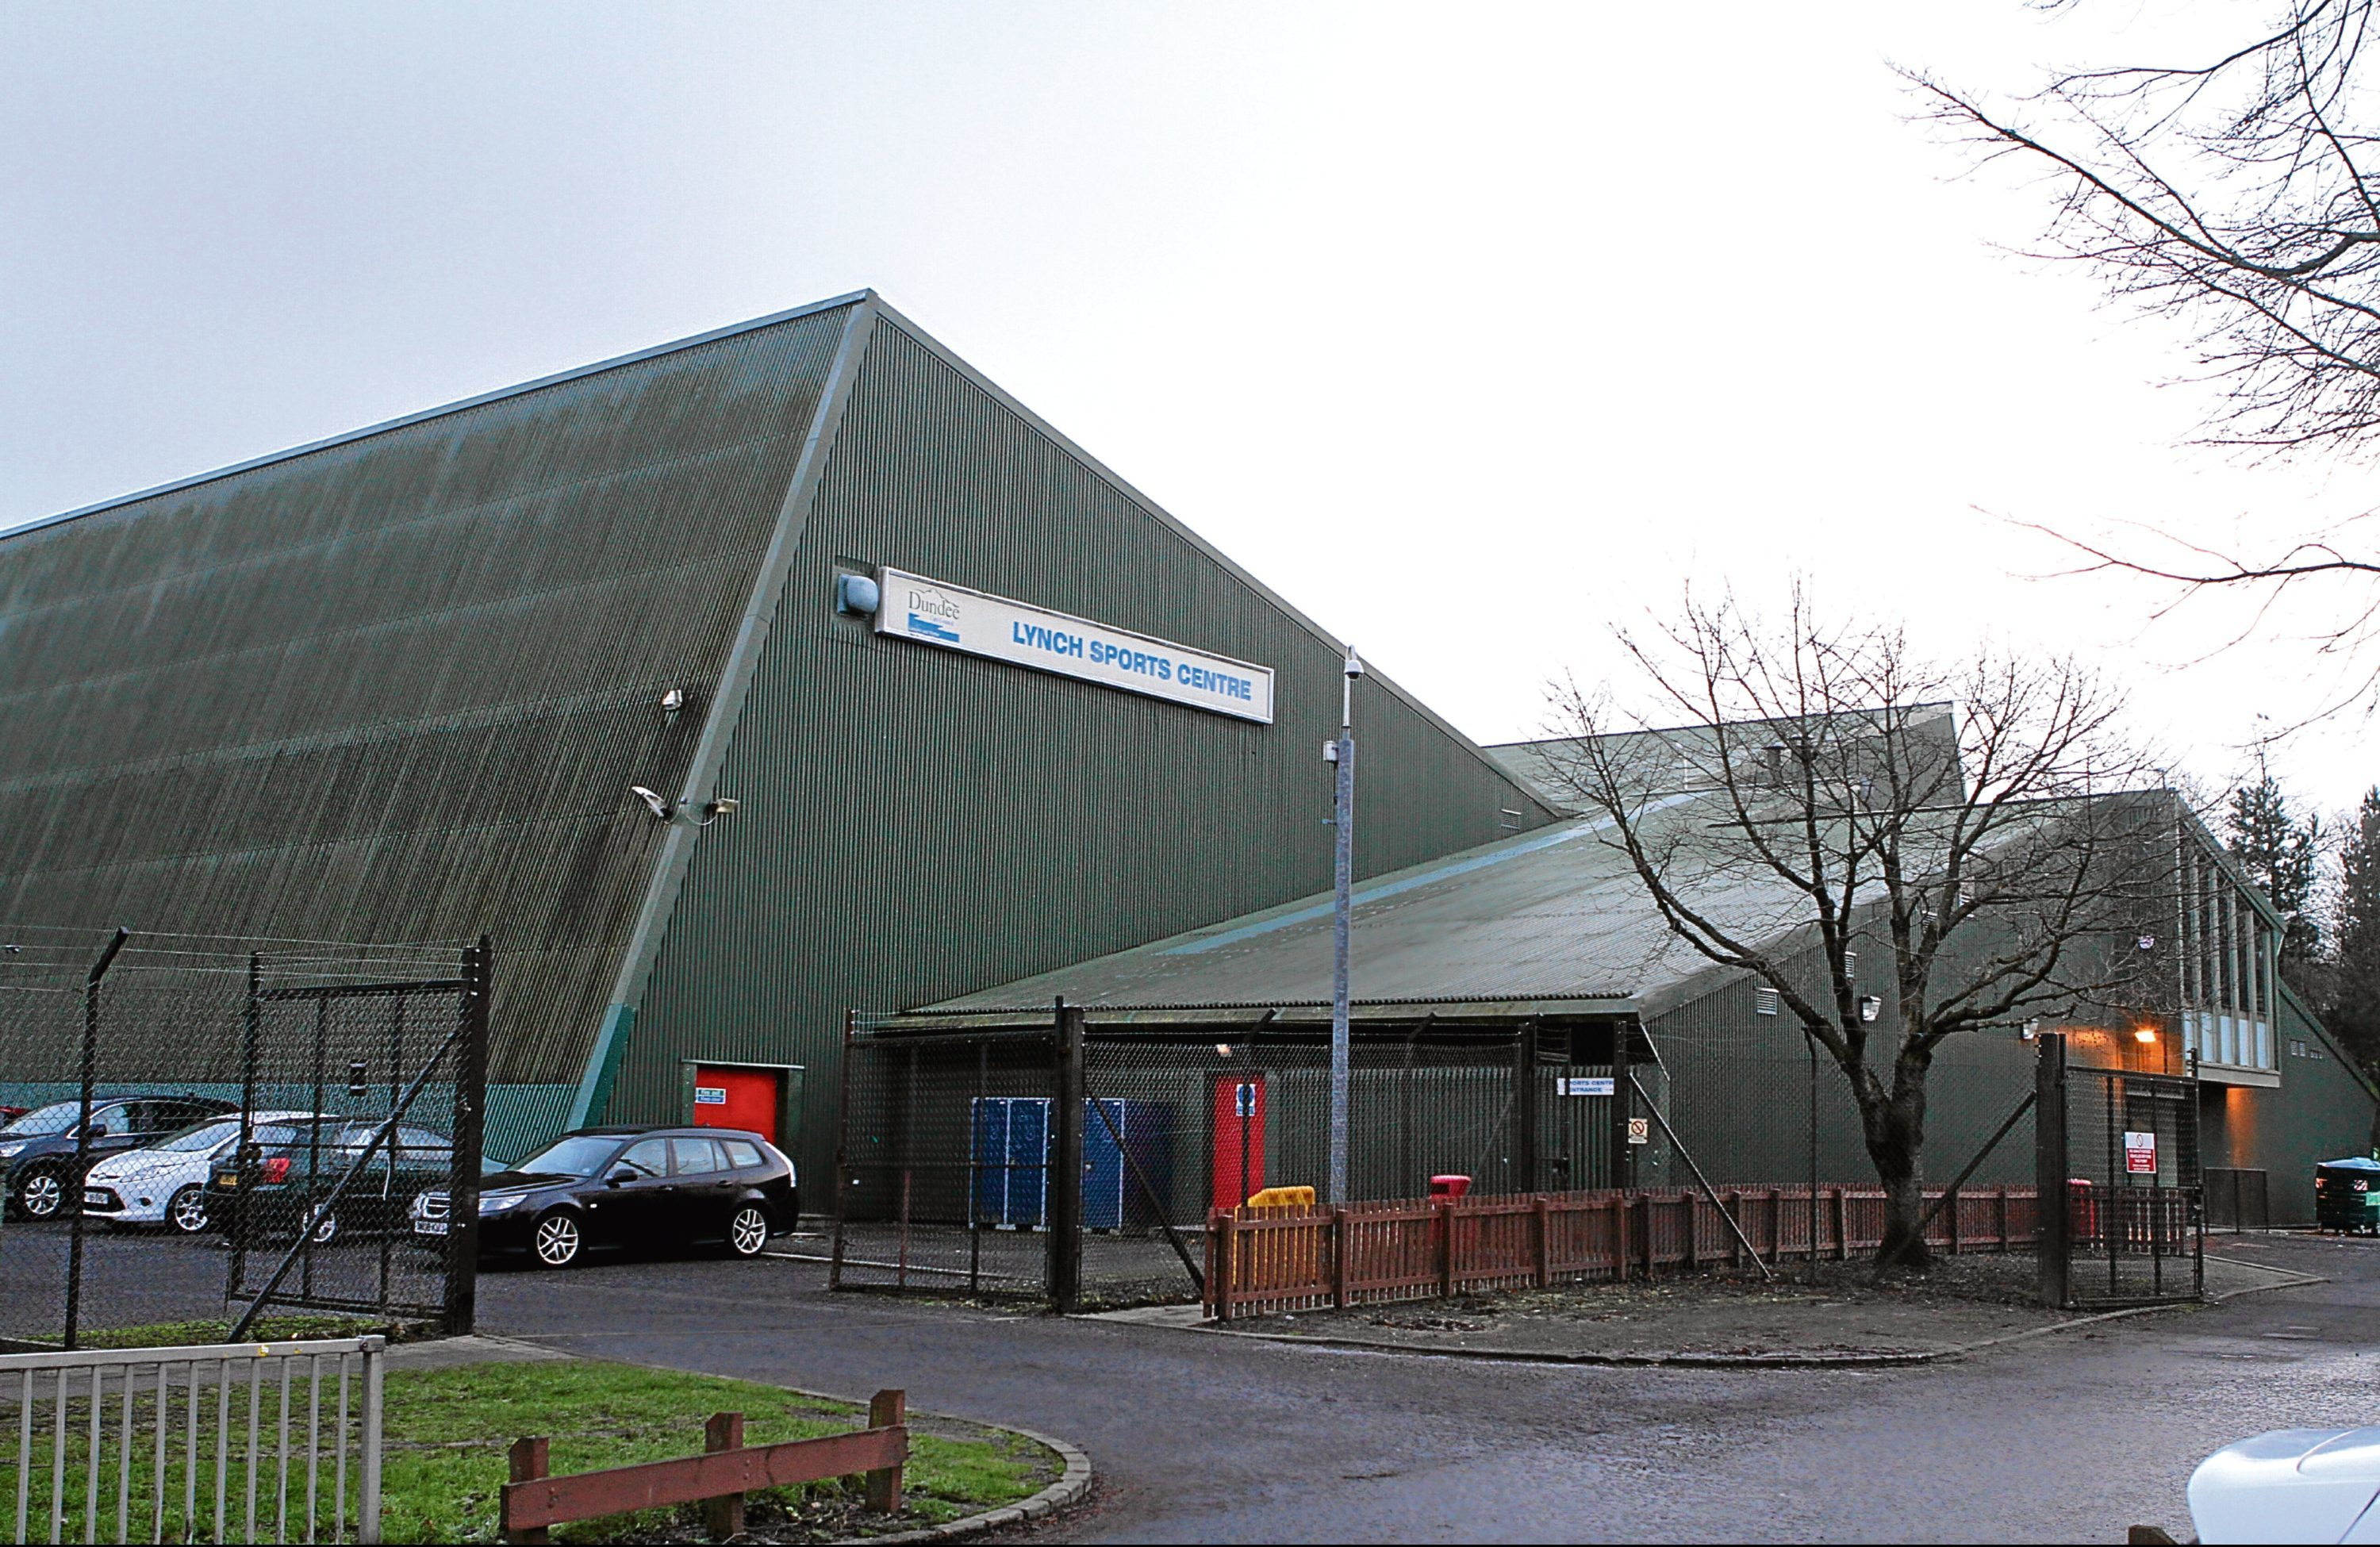 Lynch Sports Centre